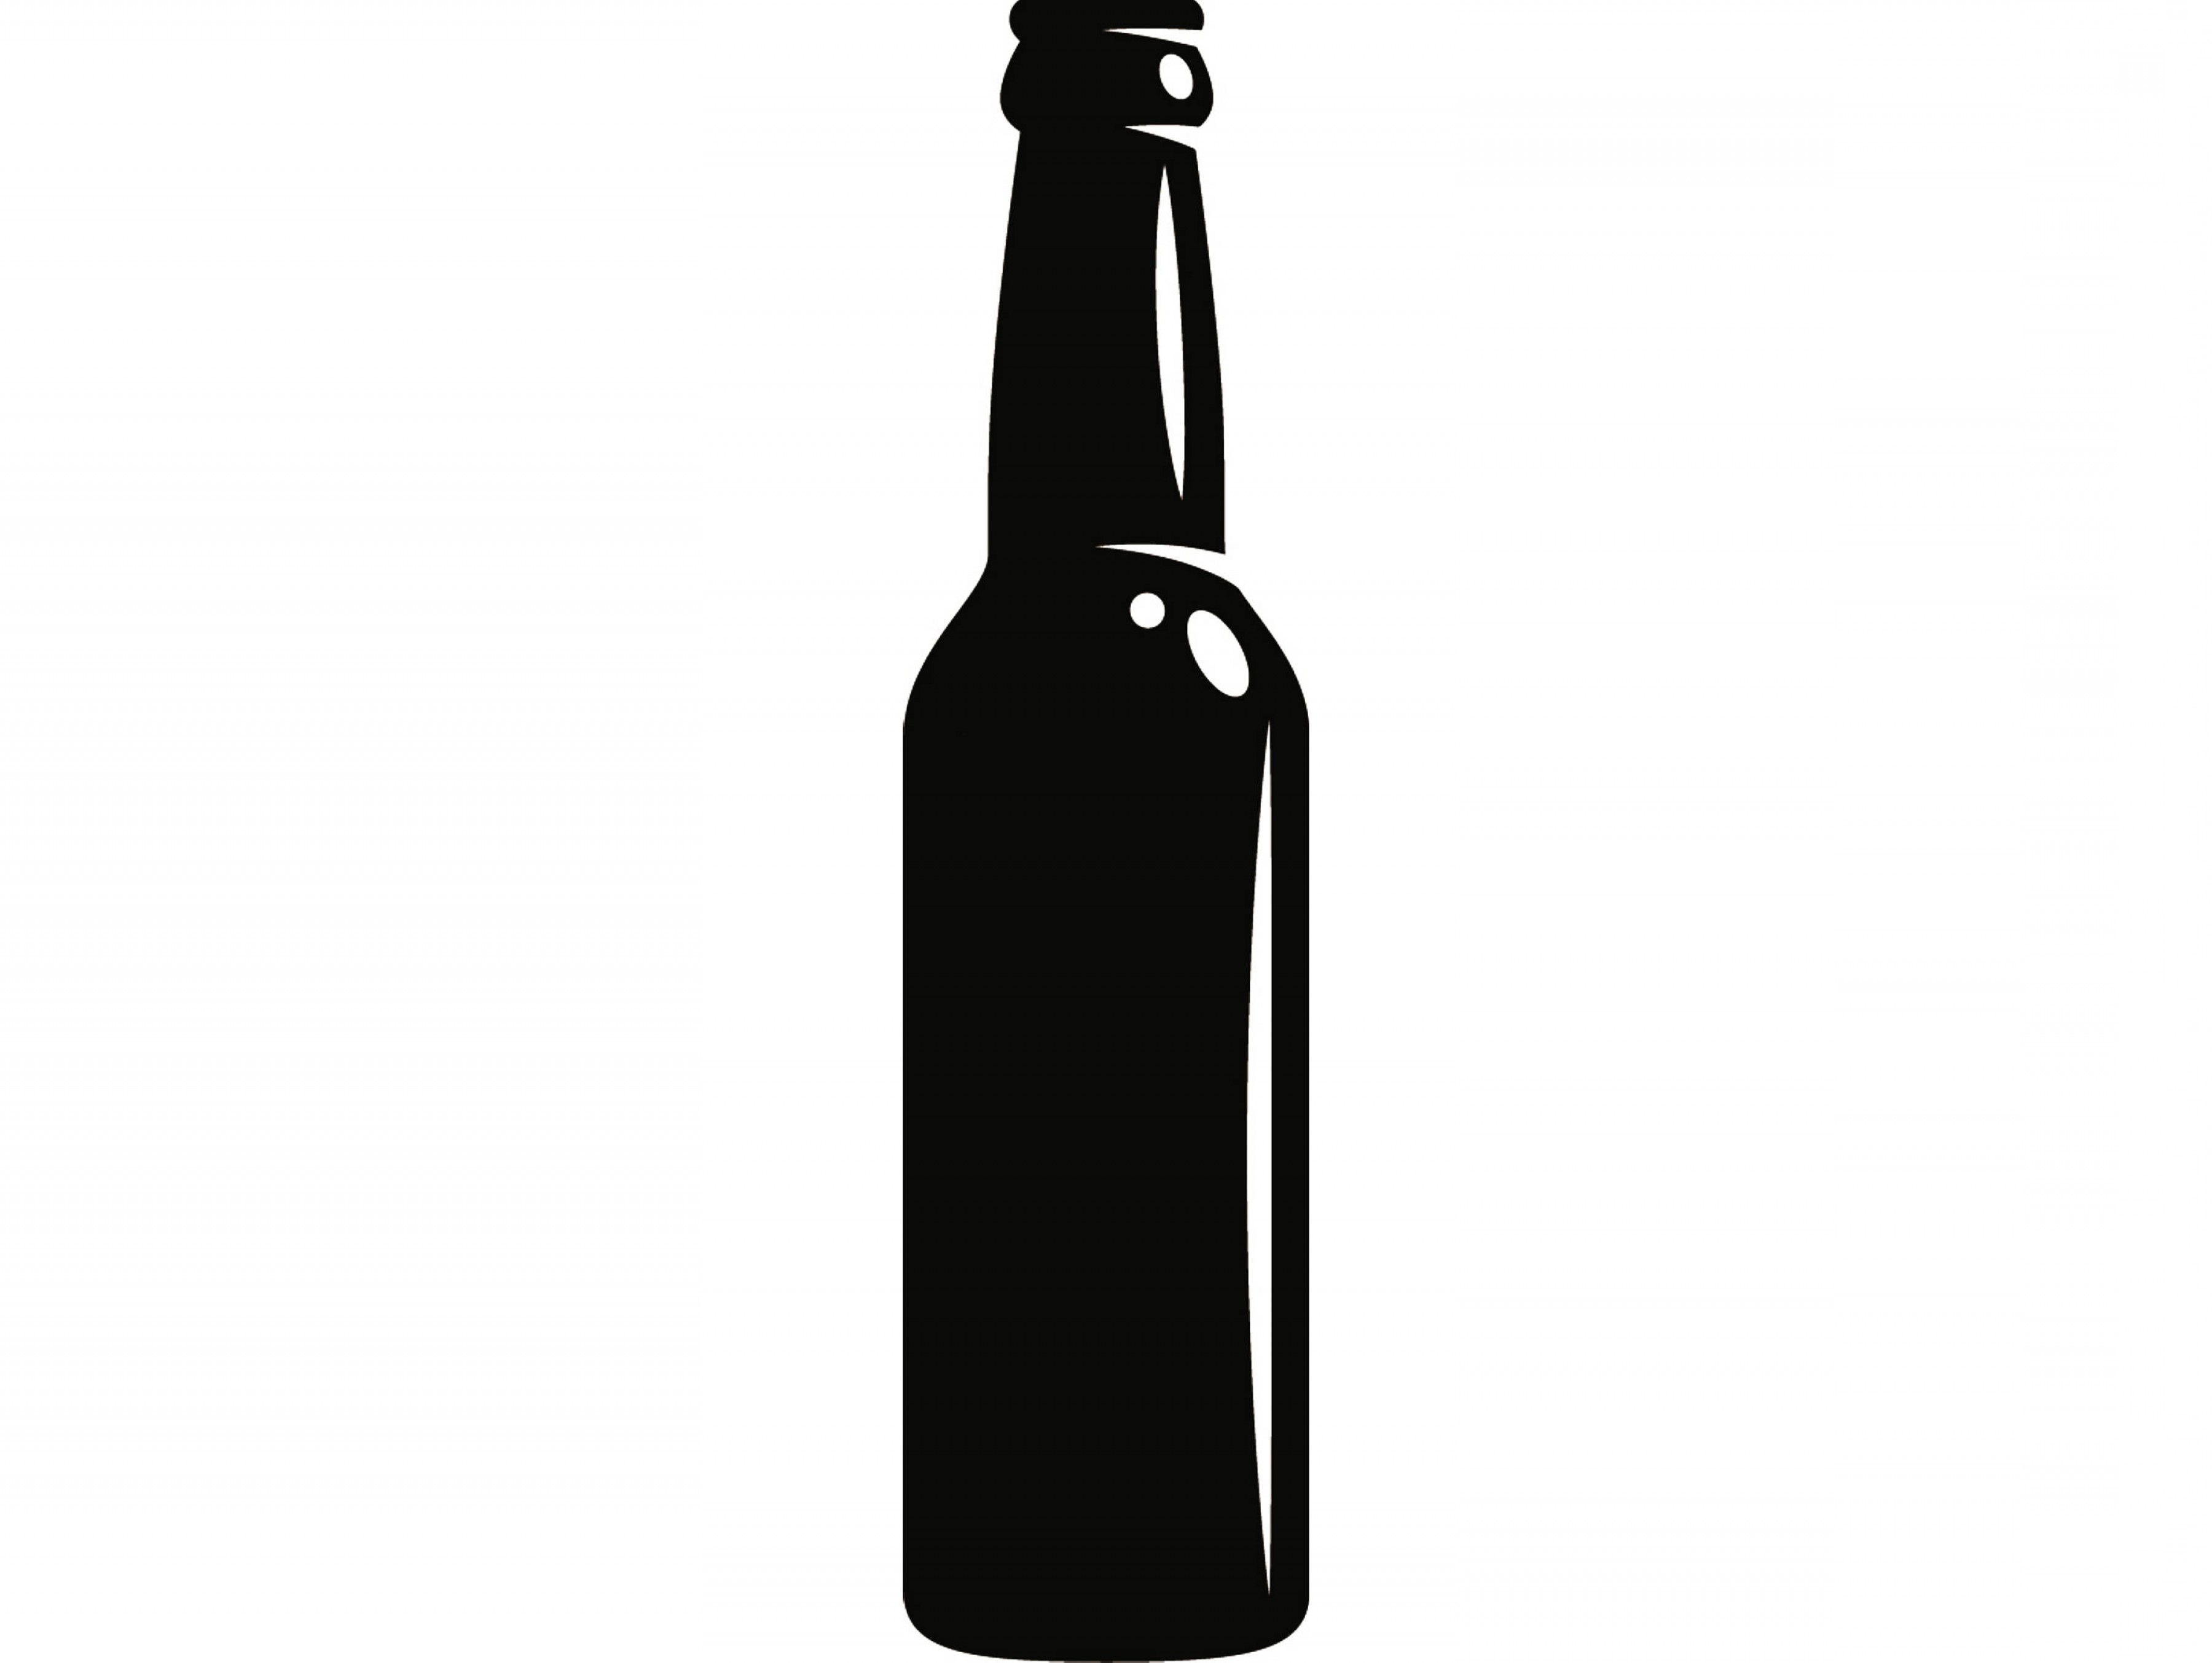 Beer bottle cheers clipart black and white clipart freeuse Beer Bottle Open Bar Pub Tavern | SOIDERGI clipart freeuse